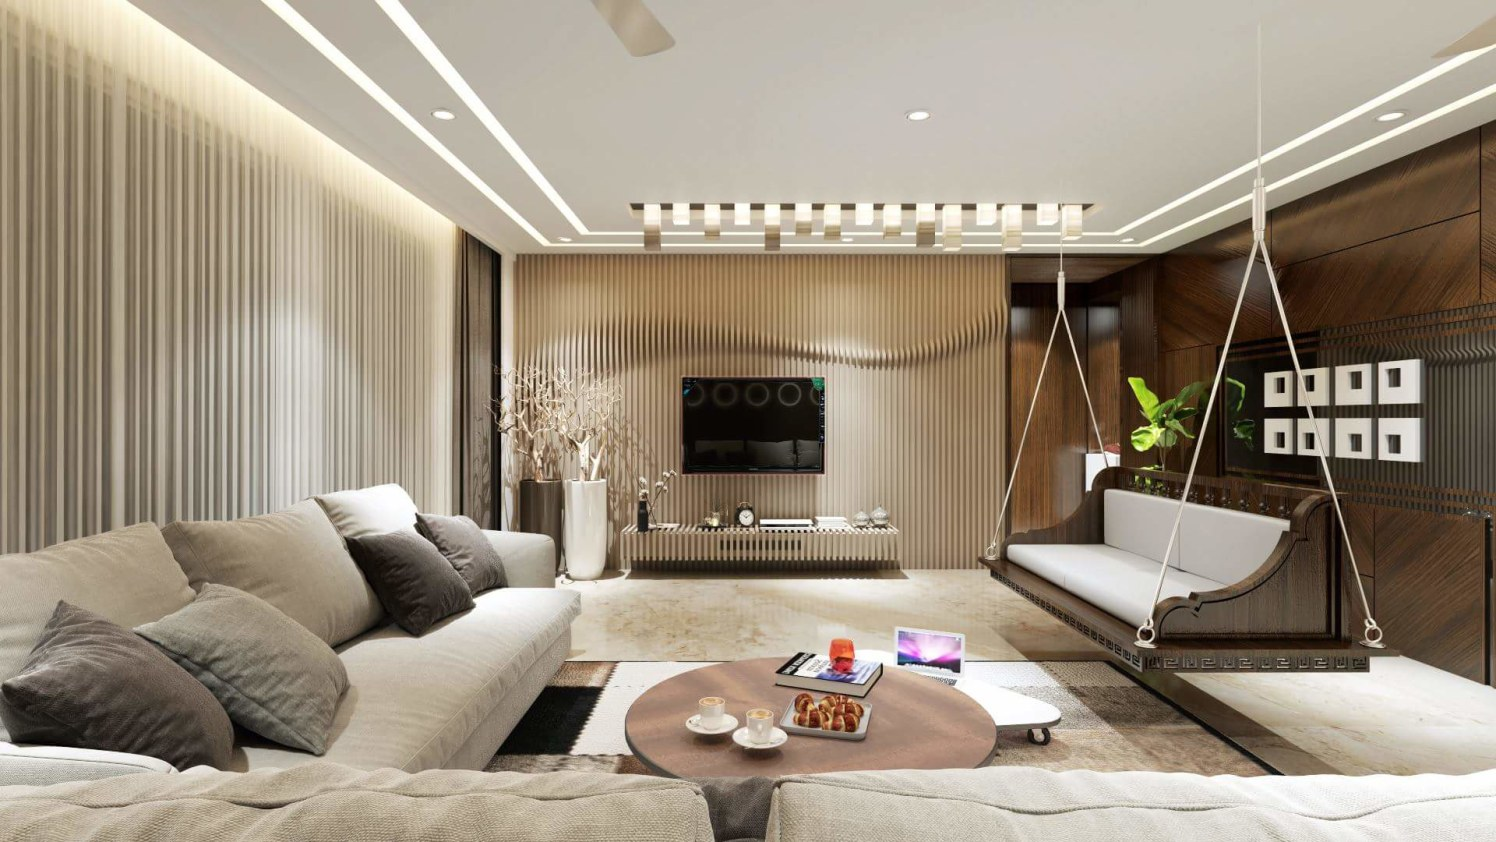 Relax and chill by Bhramesh Shinde Contemporary | Interior Design Photos & Ideas